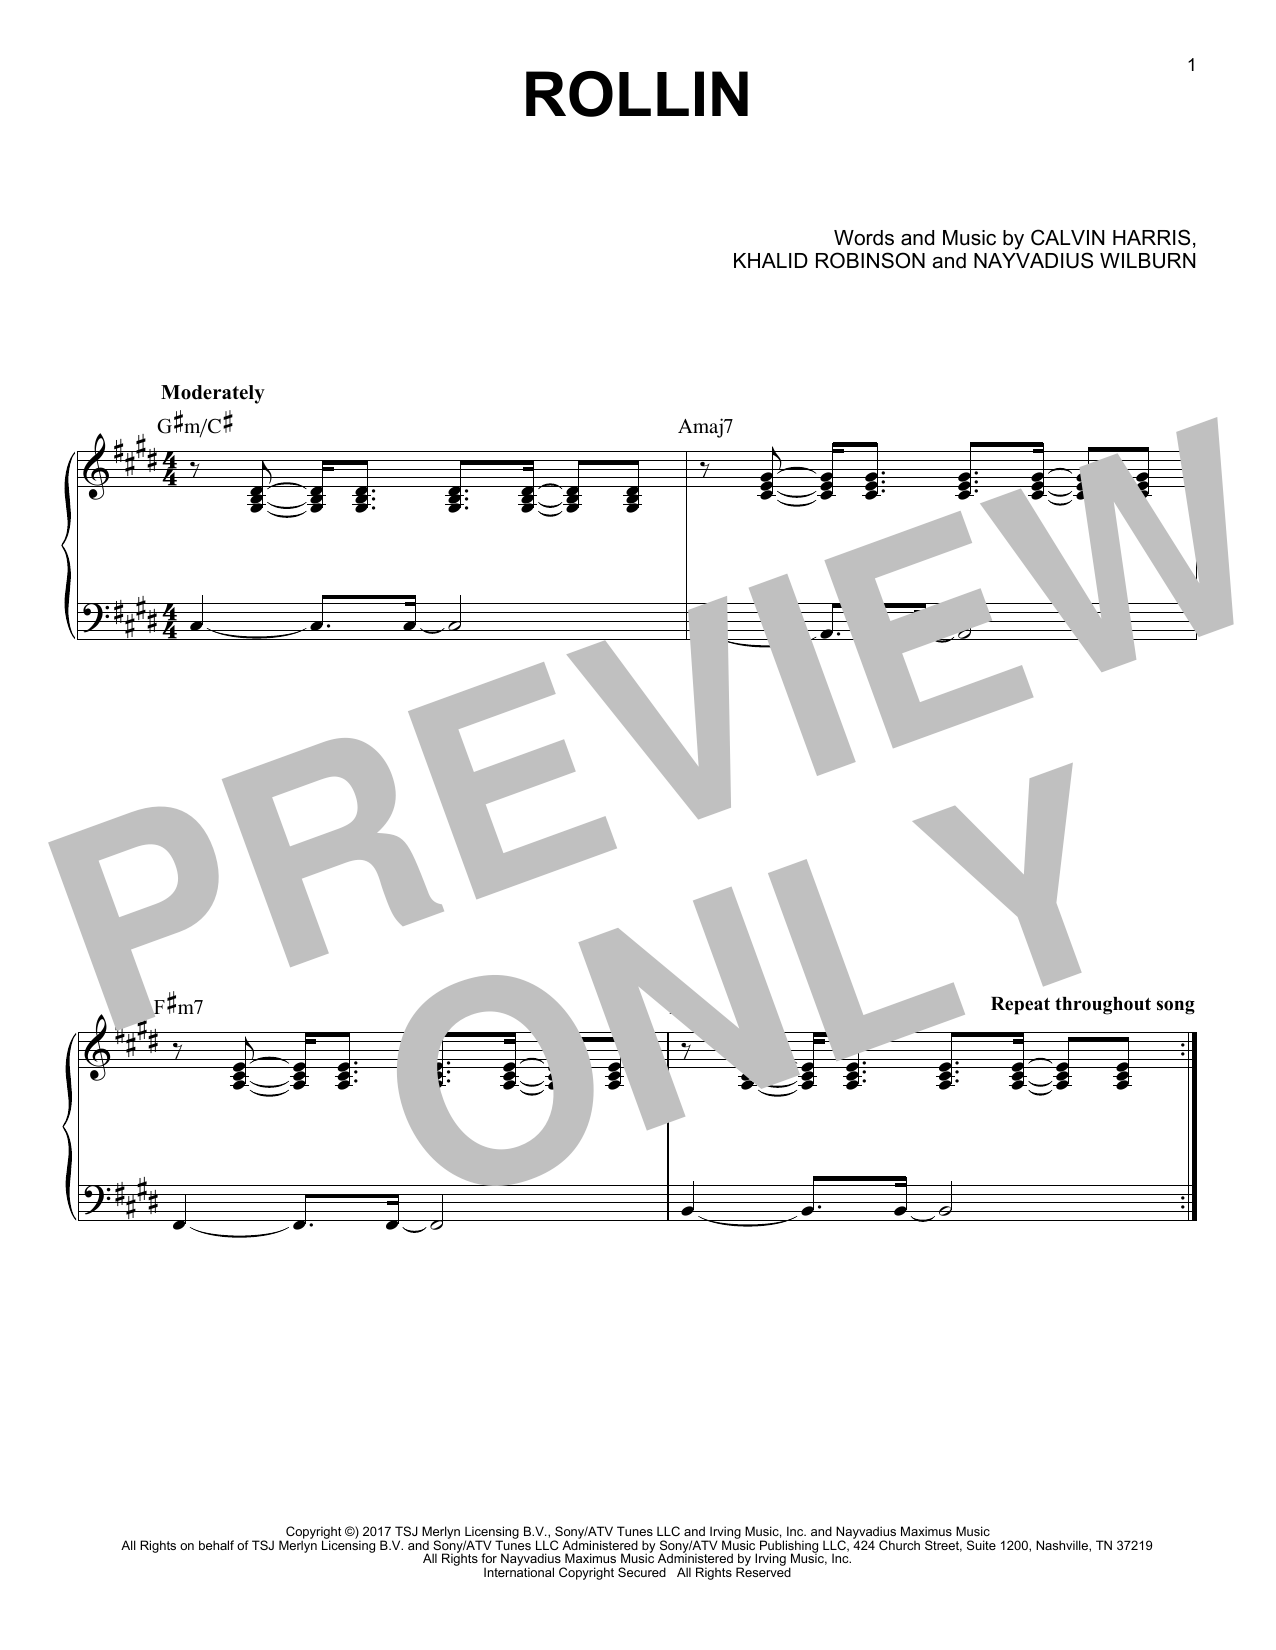 Calvin Harris Rollin (feat. Future and Khalid) sheet music notes and chords. Download Printable PDF.